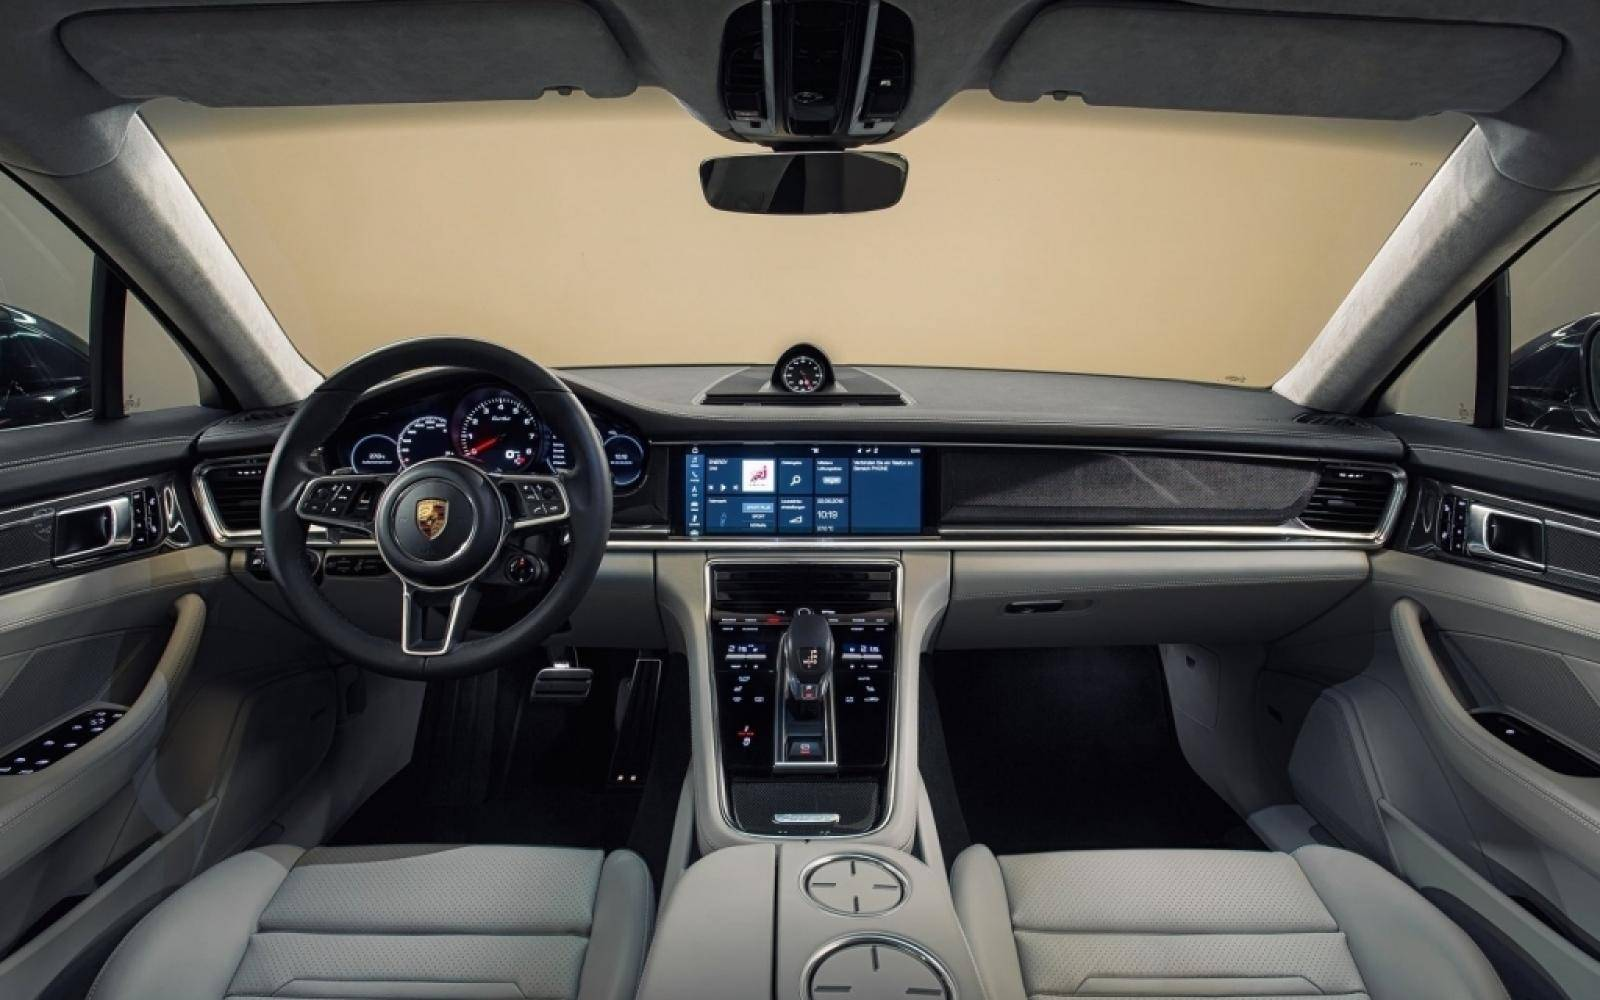 Review: Burmester 3D Surround Sound in Porsche Panamera